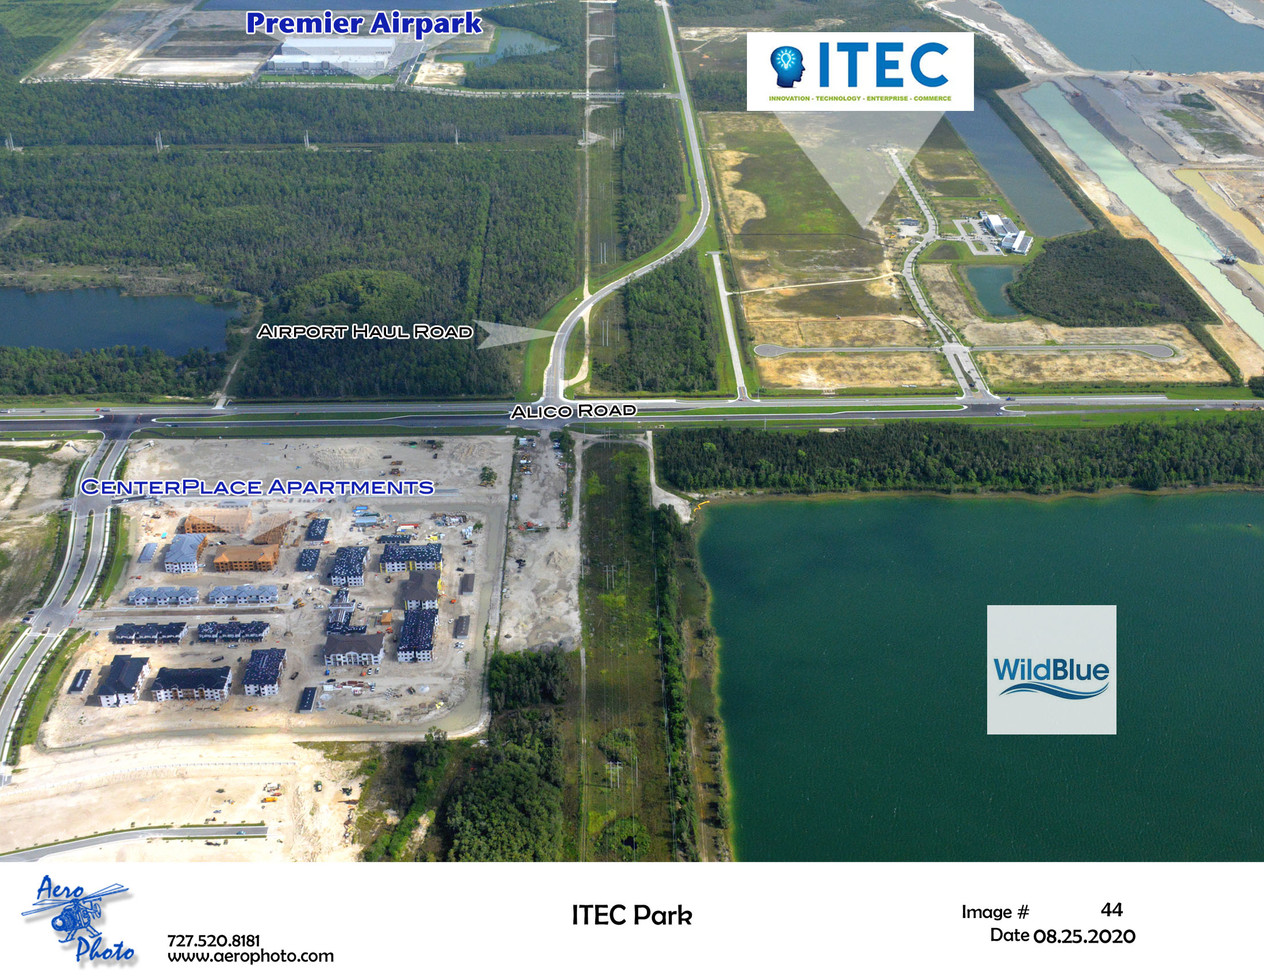 Alico ITEC is just north of WildBlue and the CenterPlace Apartments are under construction